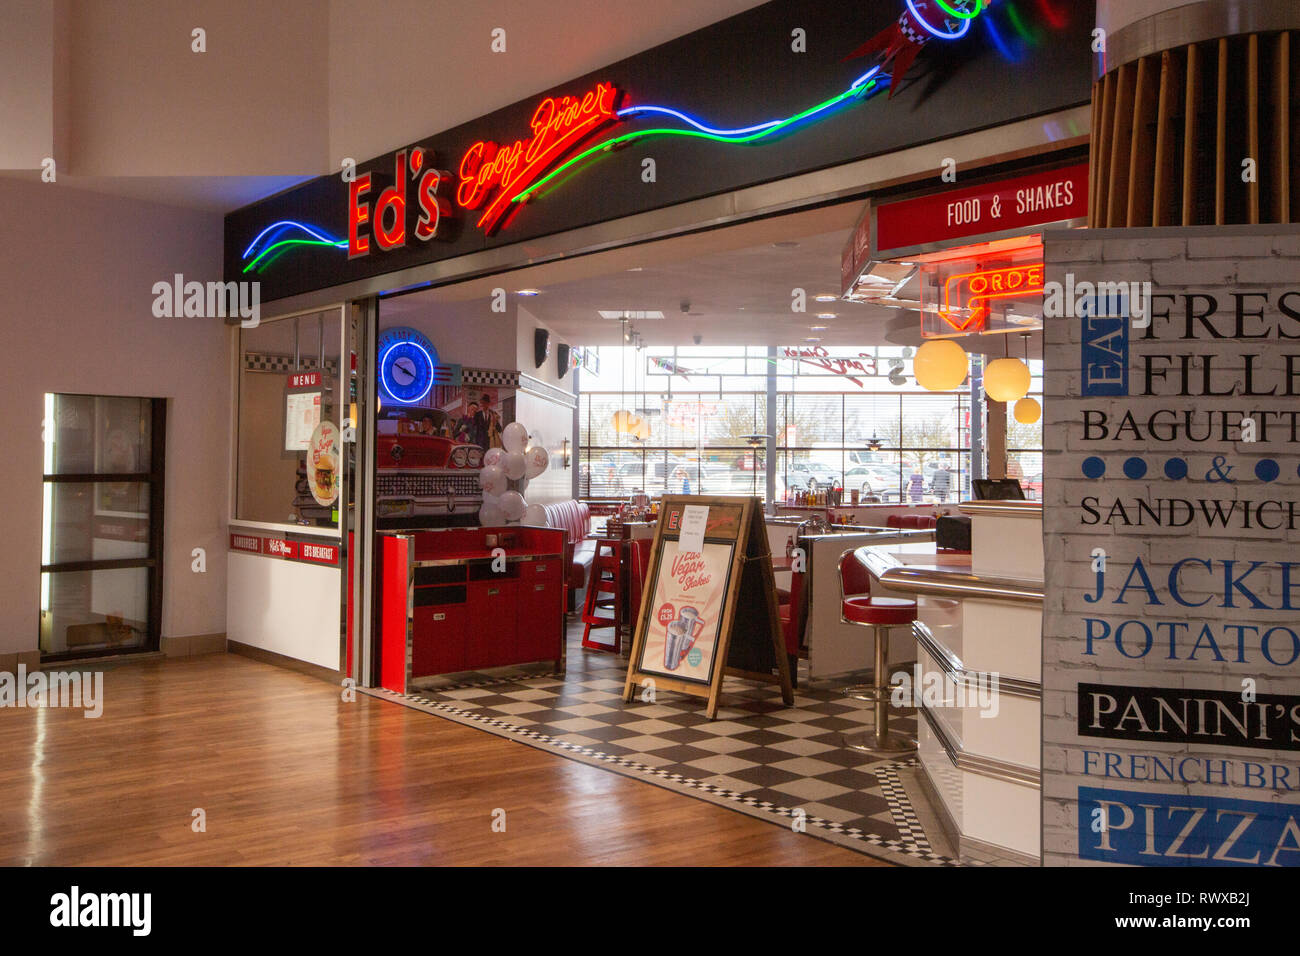 The owner of Giraffe and Ed's Easy Diner is to close 27 restaurants putting hundreds of jobs at risk. The brands will enter a company voluntary arrangement (CVA) and close almost a third of their 87 restaurants. Boparan Restaurant Group (BRG) said sales had improved at the chains since they were acquired in 2016, but several sites remained unprofitable. - Stock Image